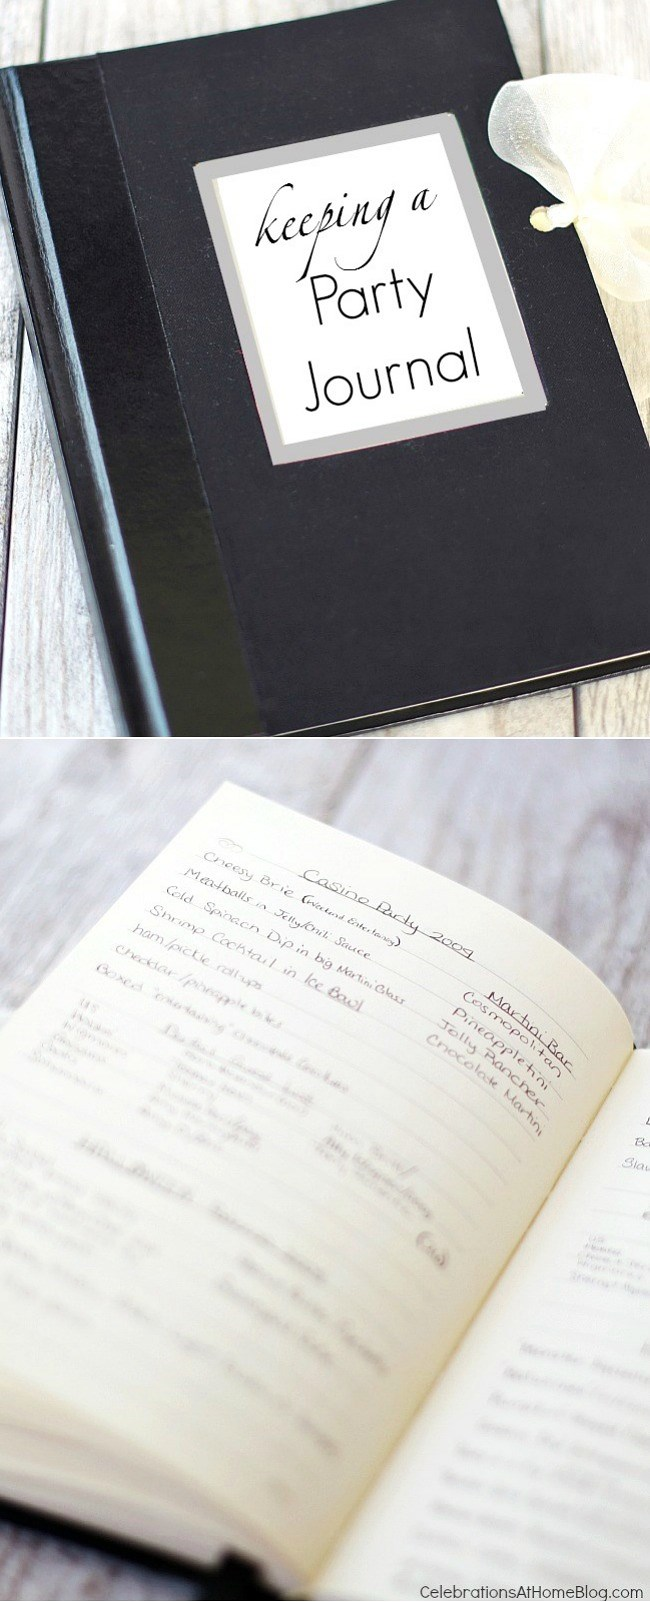 I've been keeping a party journal for years! Get a peek inside and find out what information to keep. It's an invaluable tool for entertaining at home.